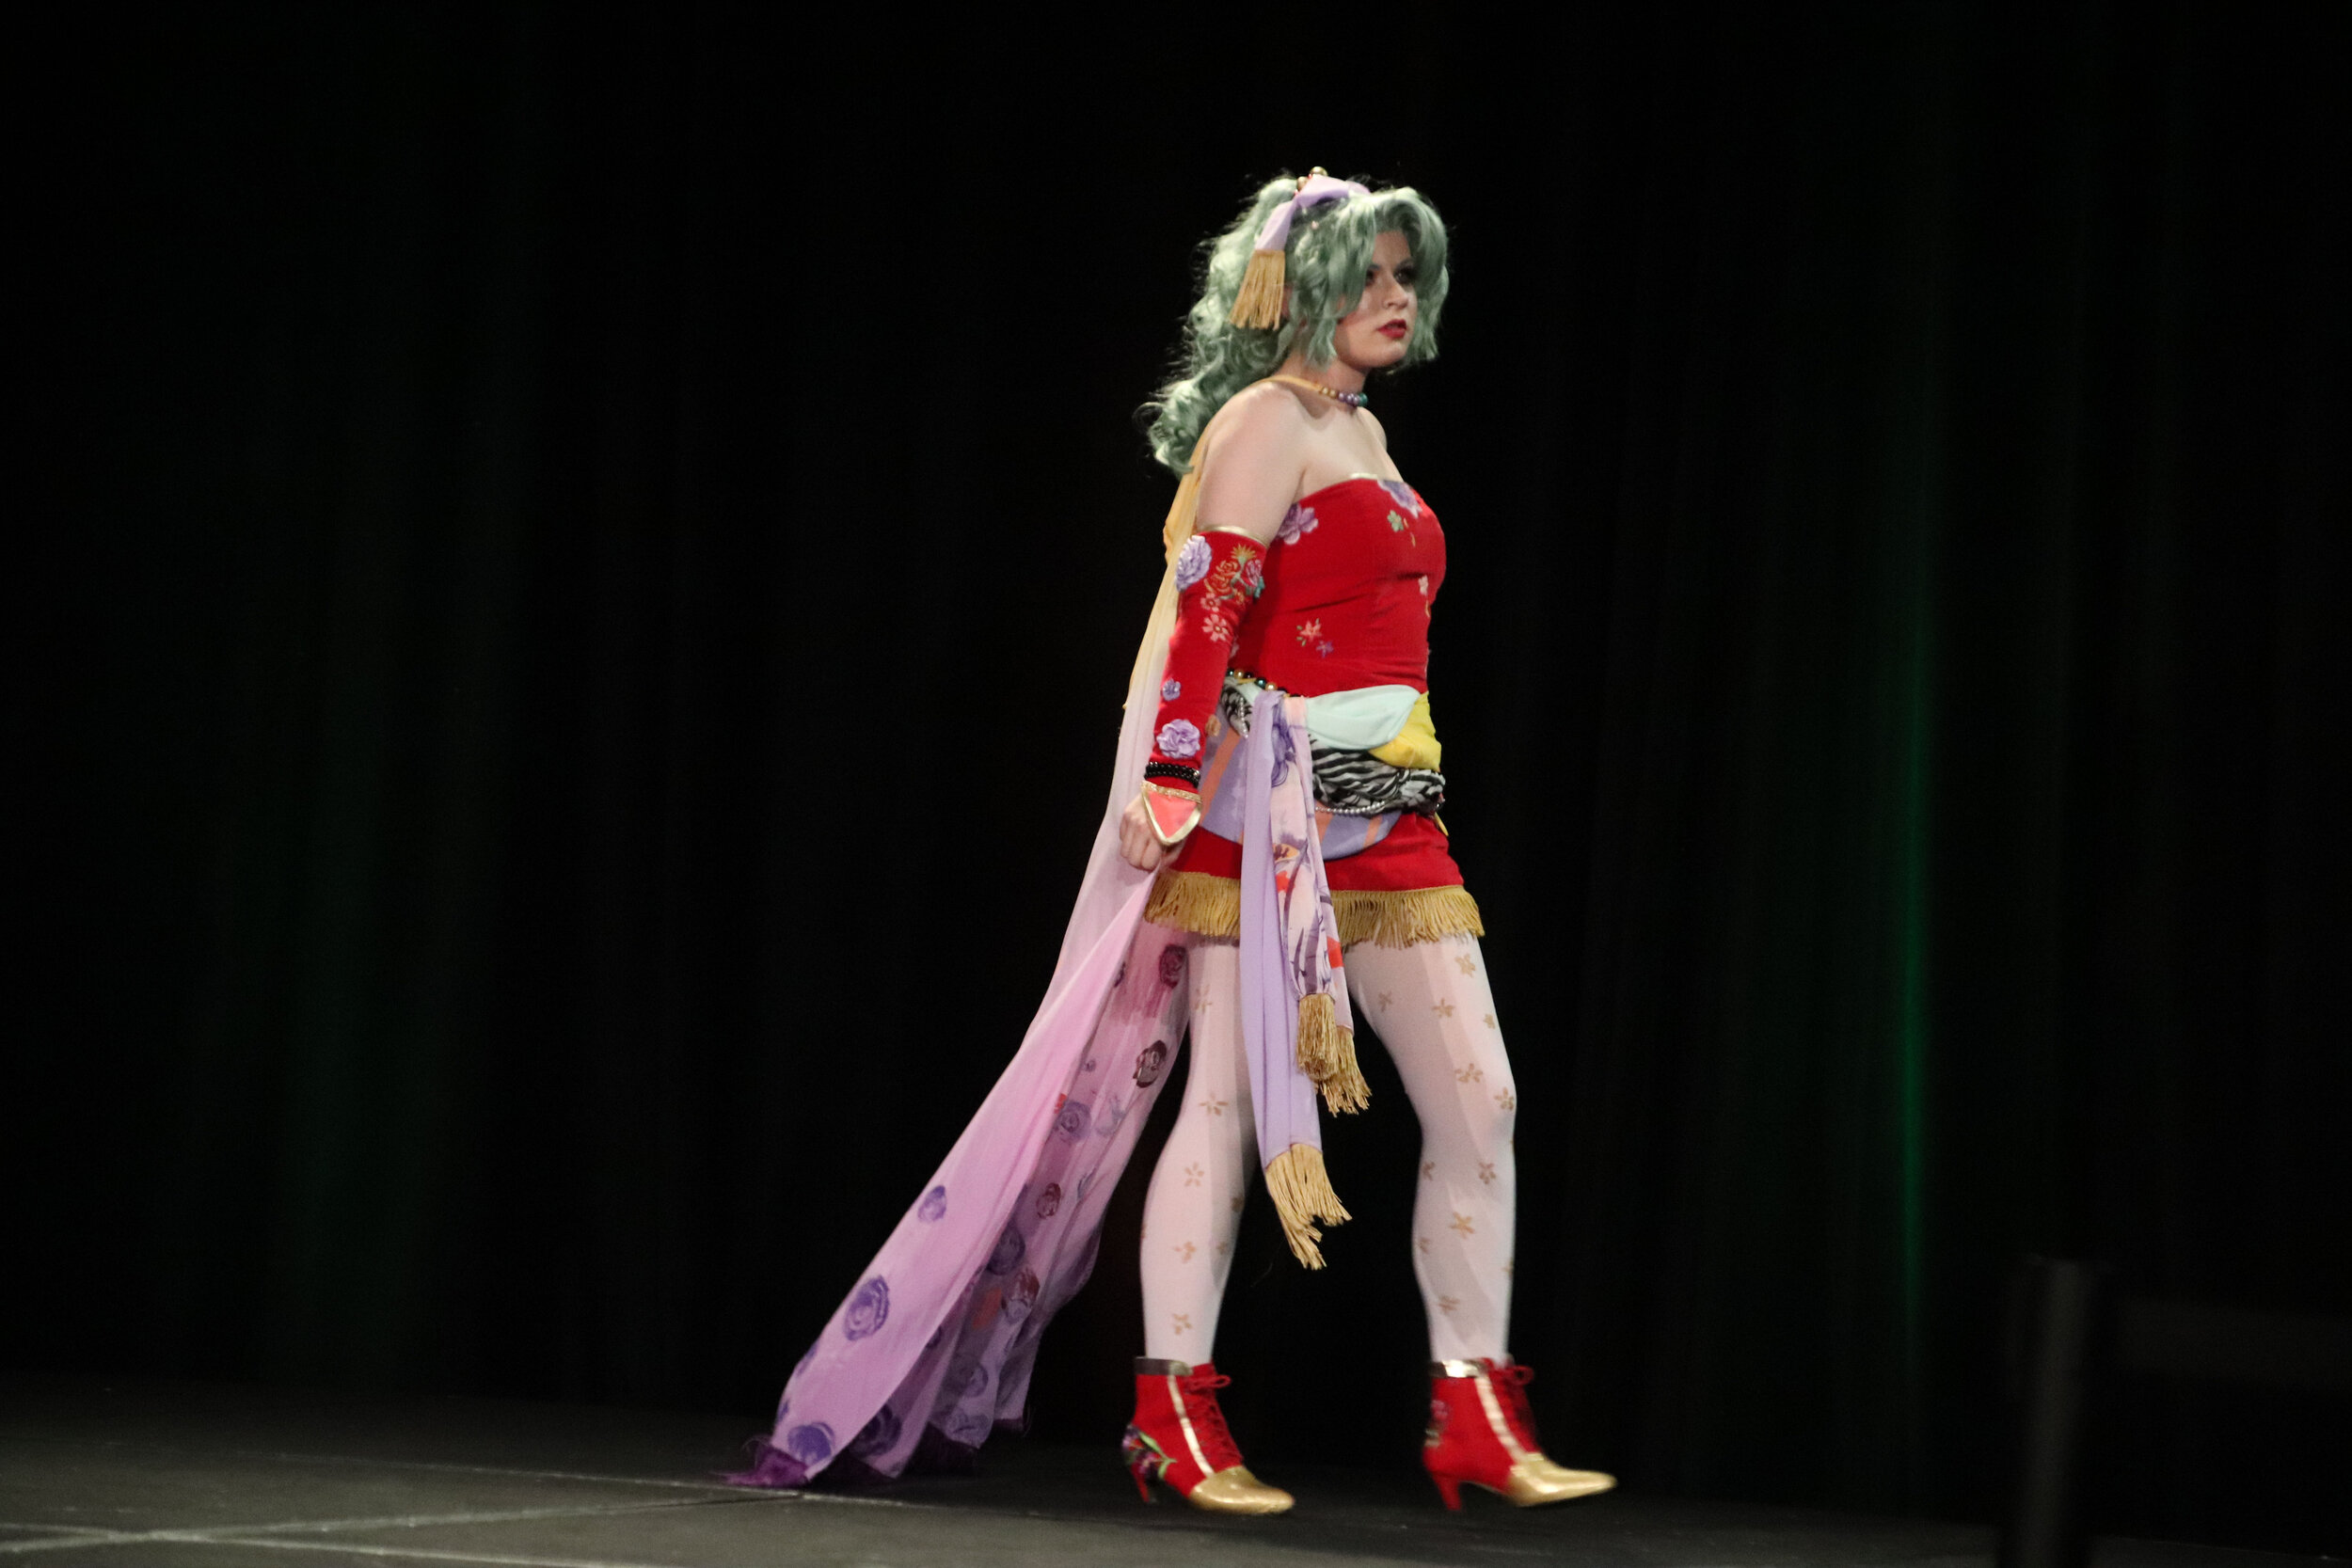 NDK Cosplay Contest 2019-112.jpg